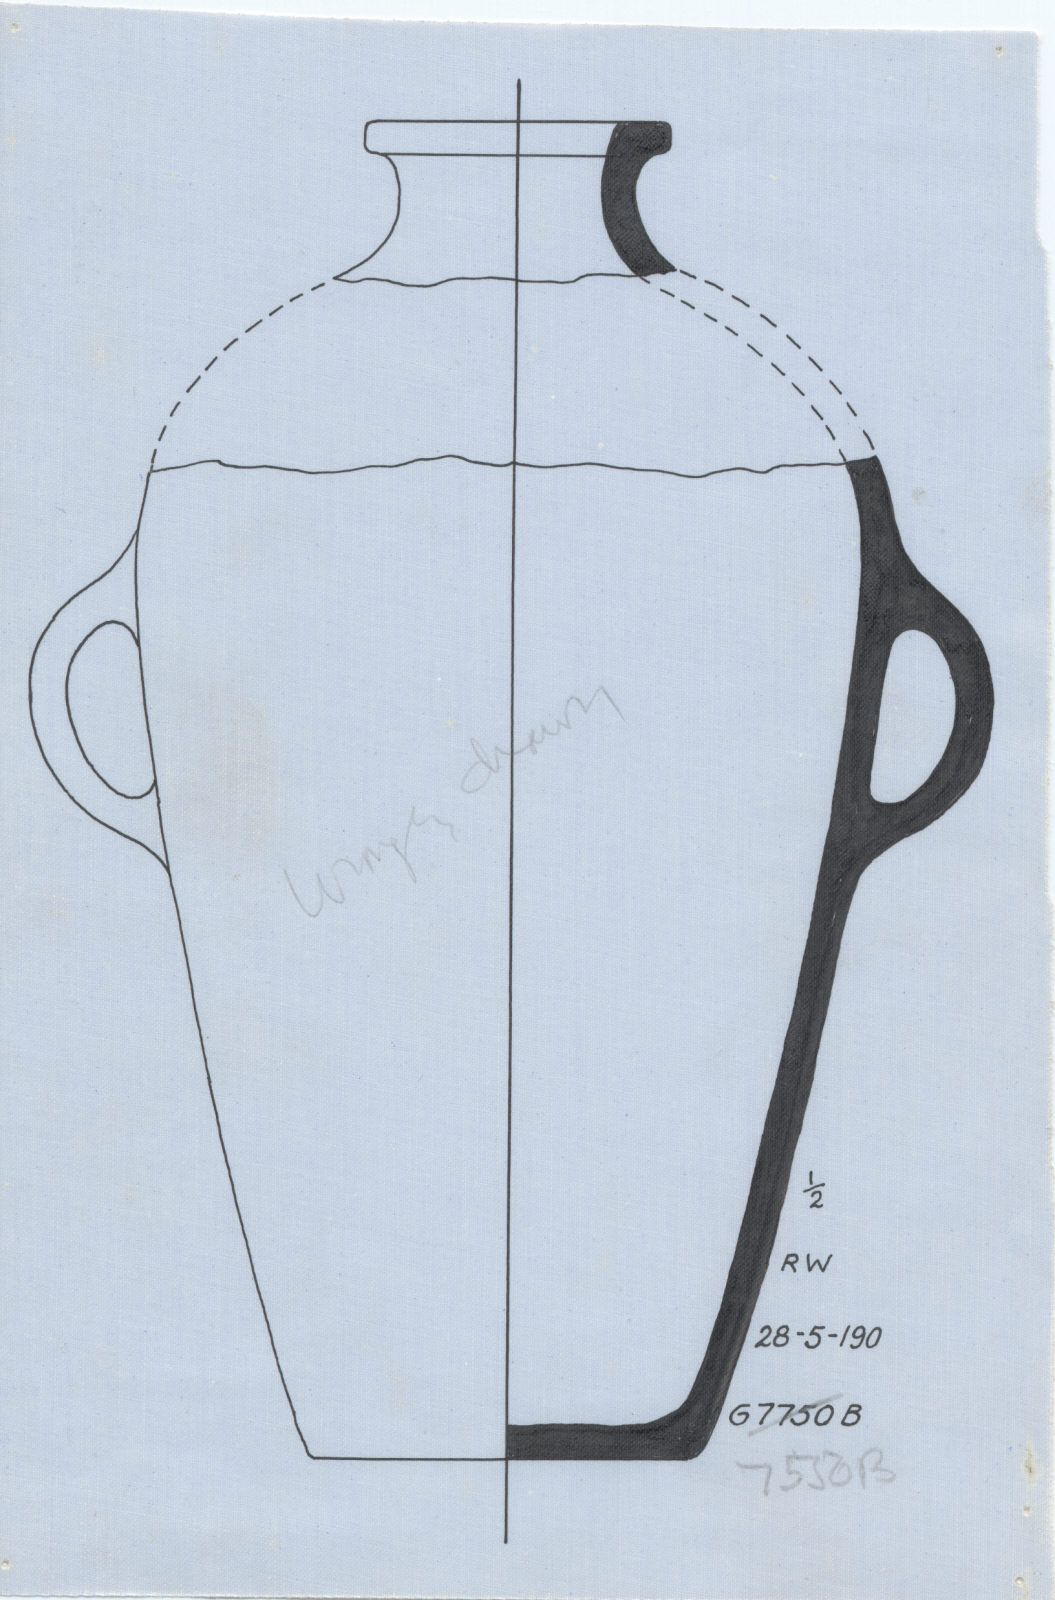 Drawings: G 7550, Shaft B: pottery, jar with two handles